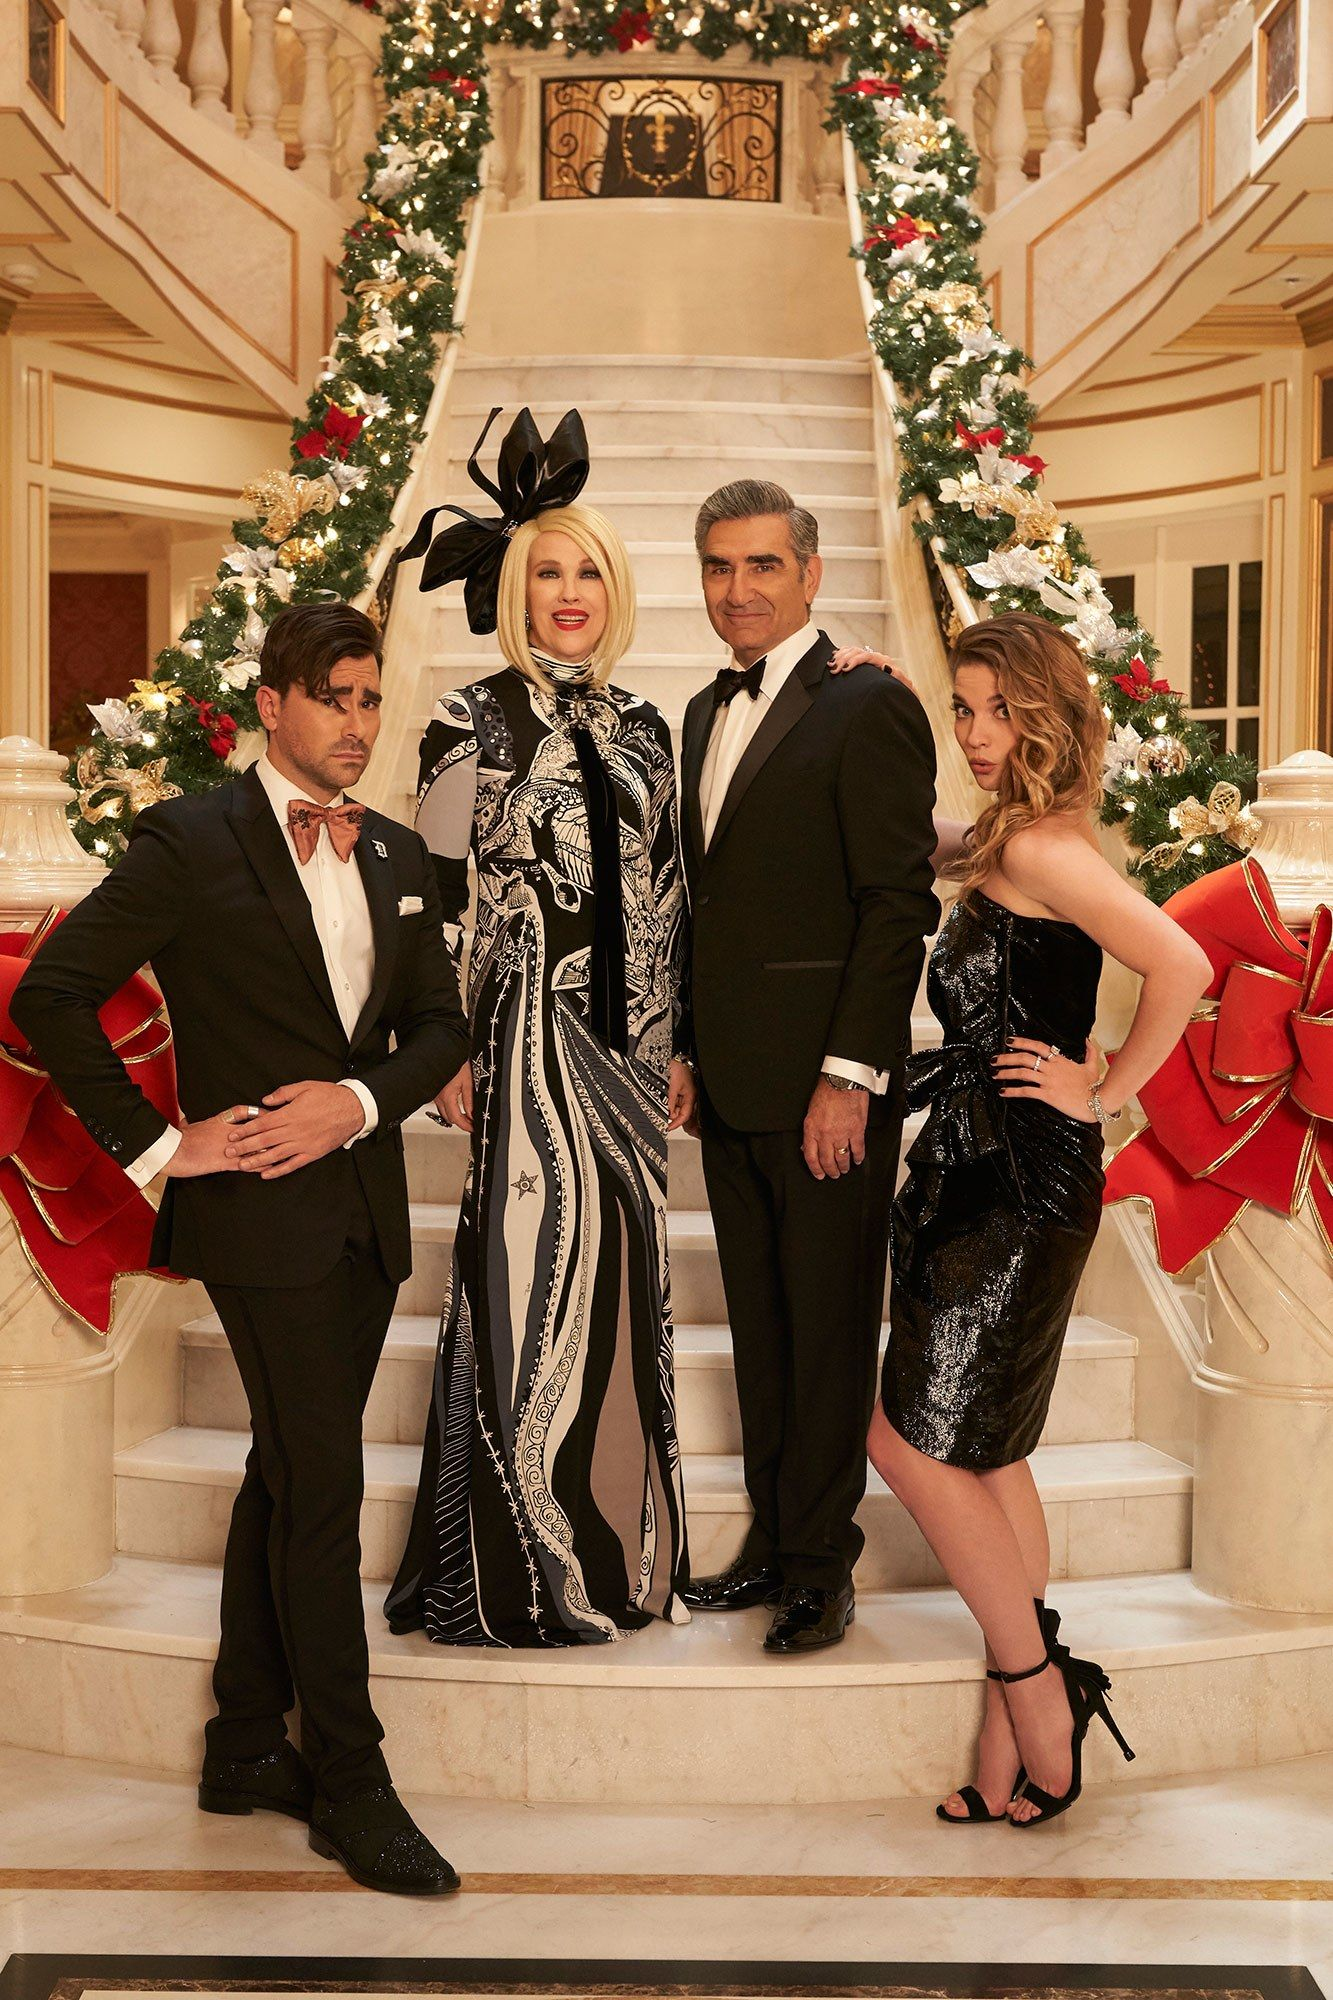 The Best Holiday Specials to Watch in 2018 Schitts creek